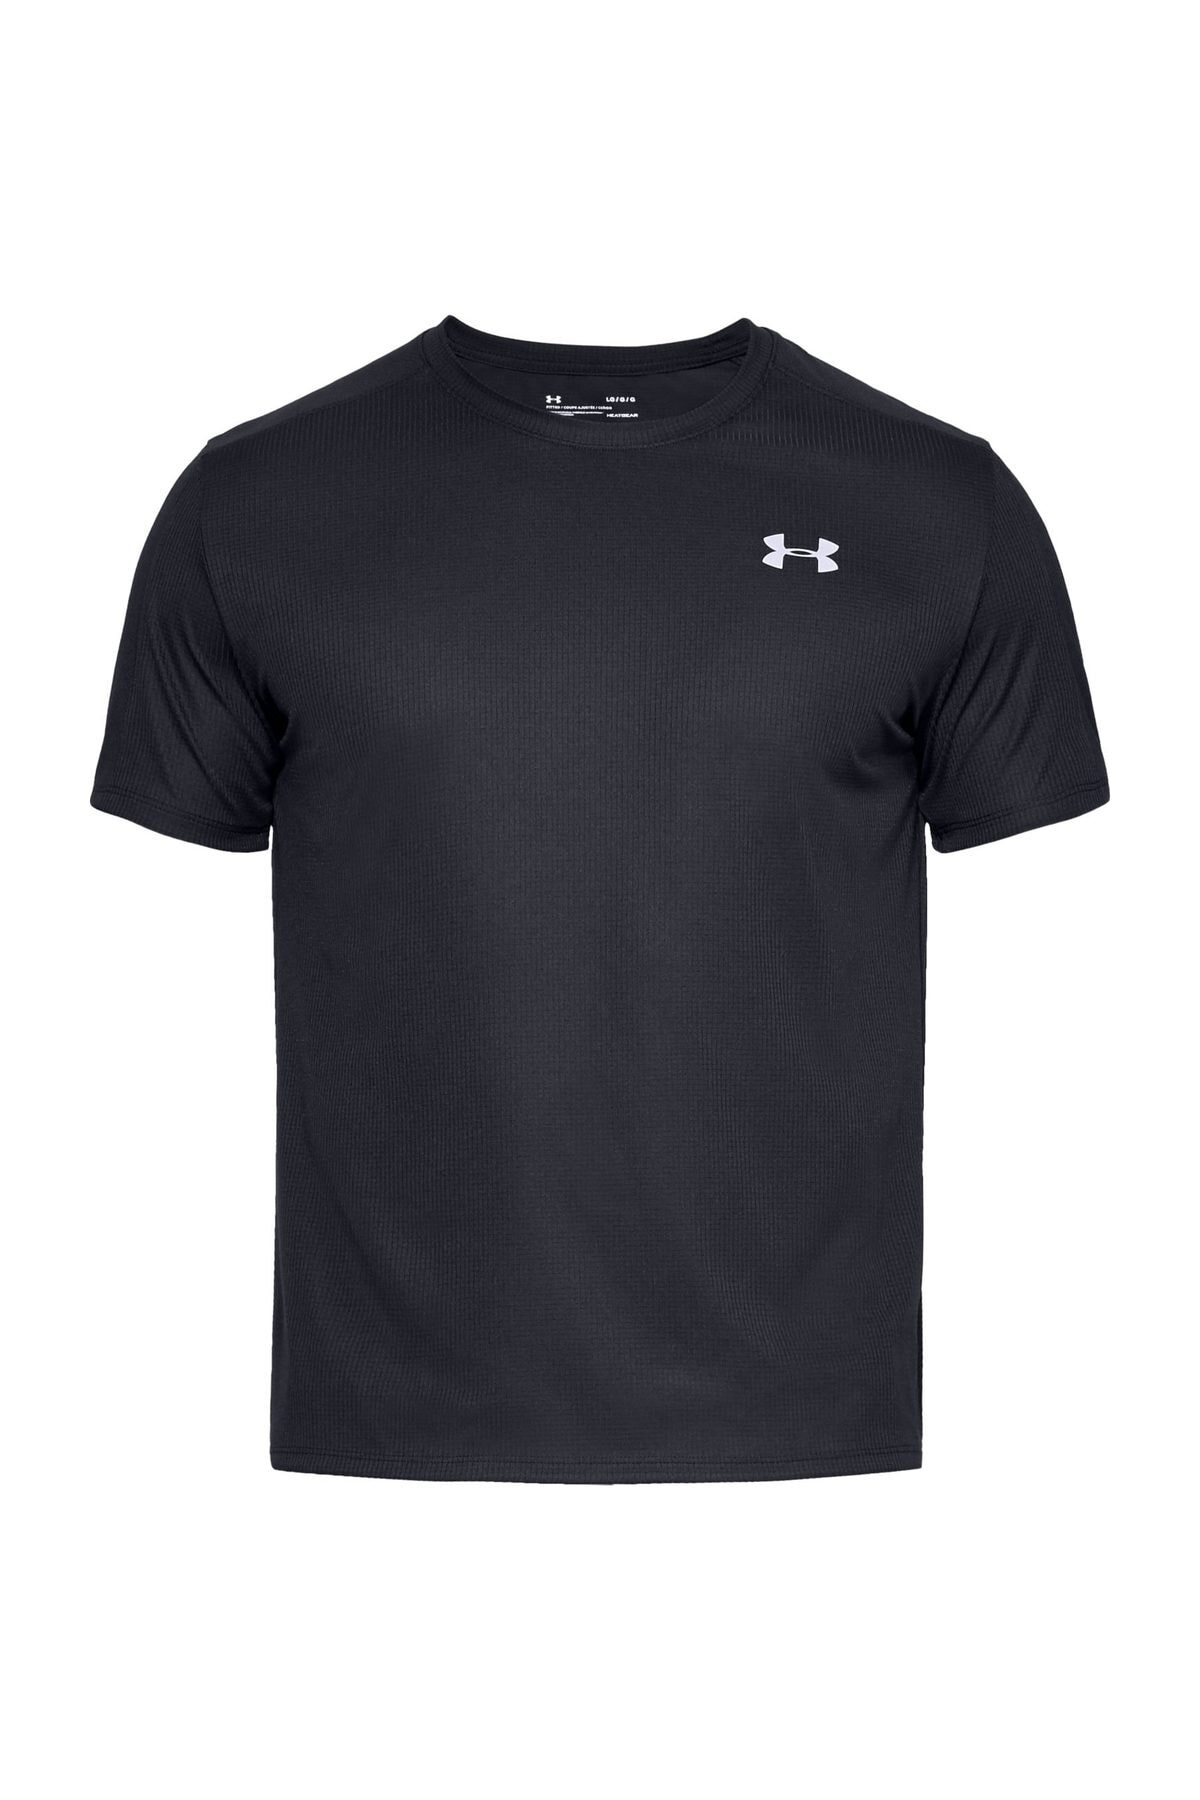 Under Armour Erkek Spor T-Shirt - UA Speed Stride Shortsleeve - 1326564-001 1